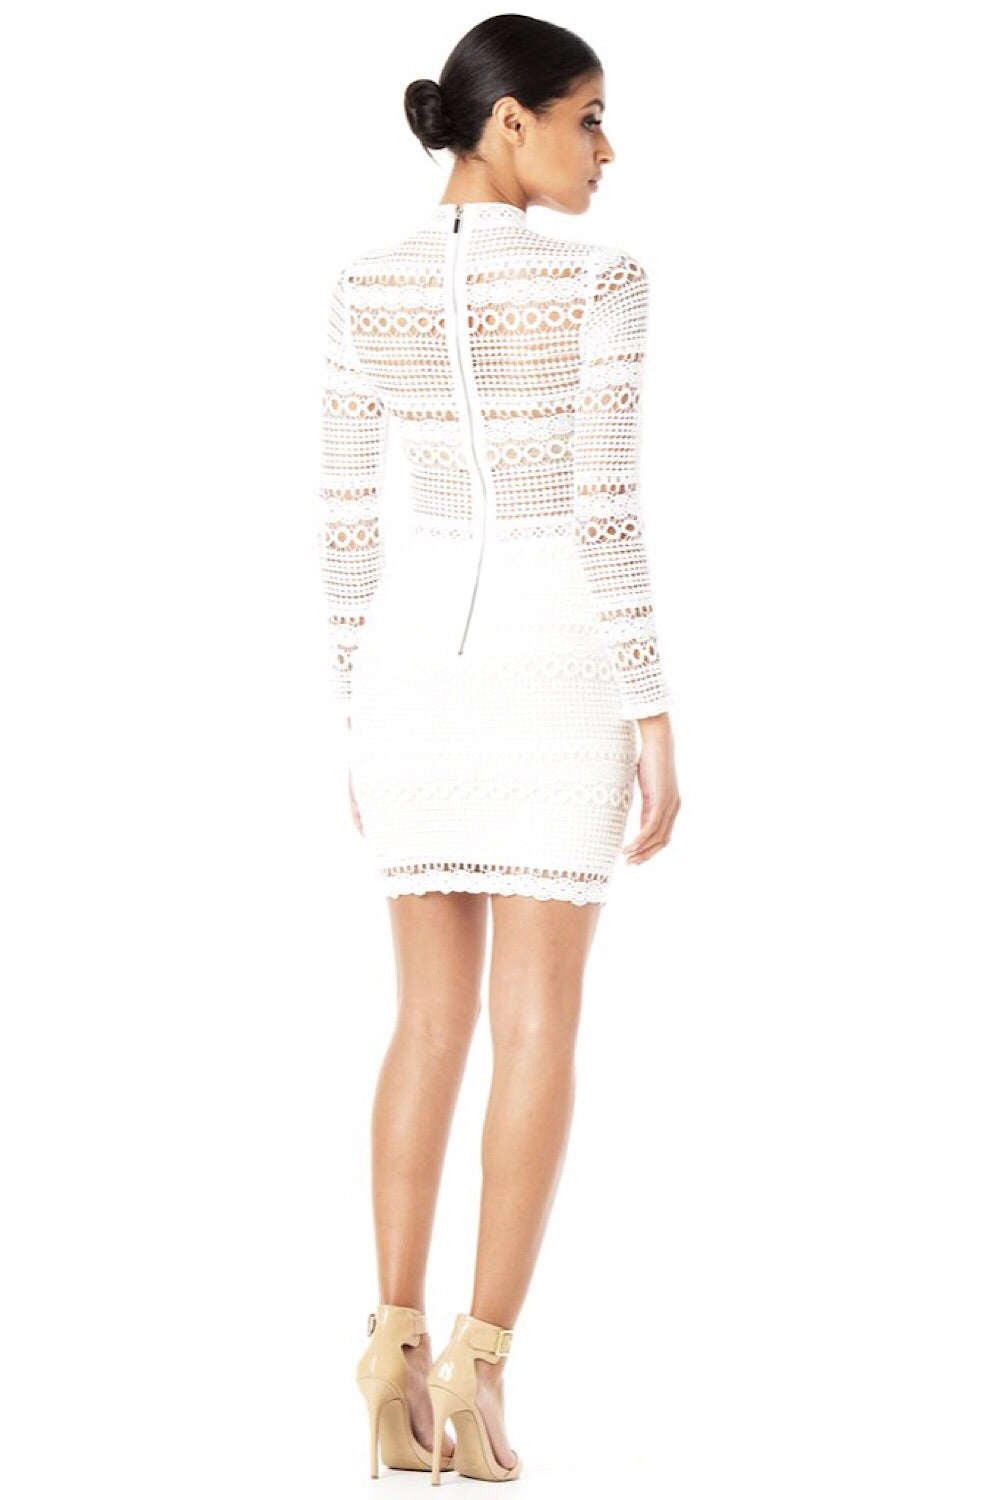 Romànce White Lace Dress